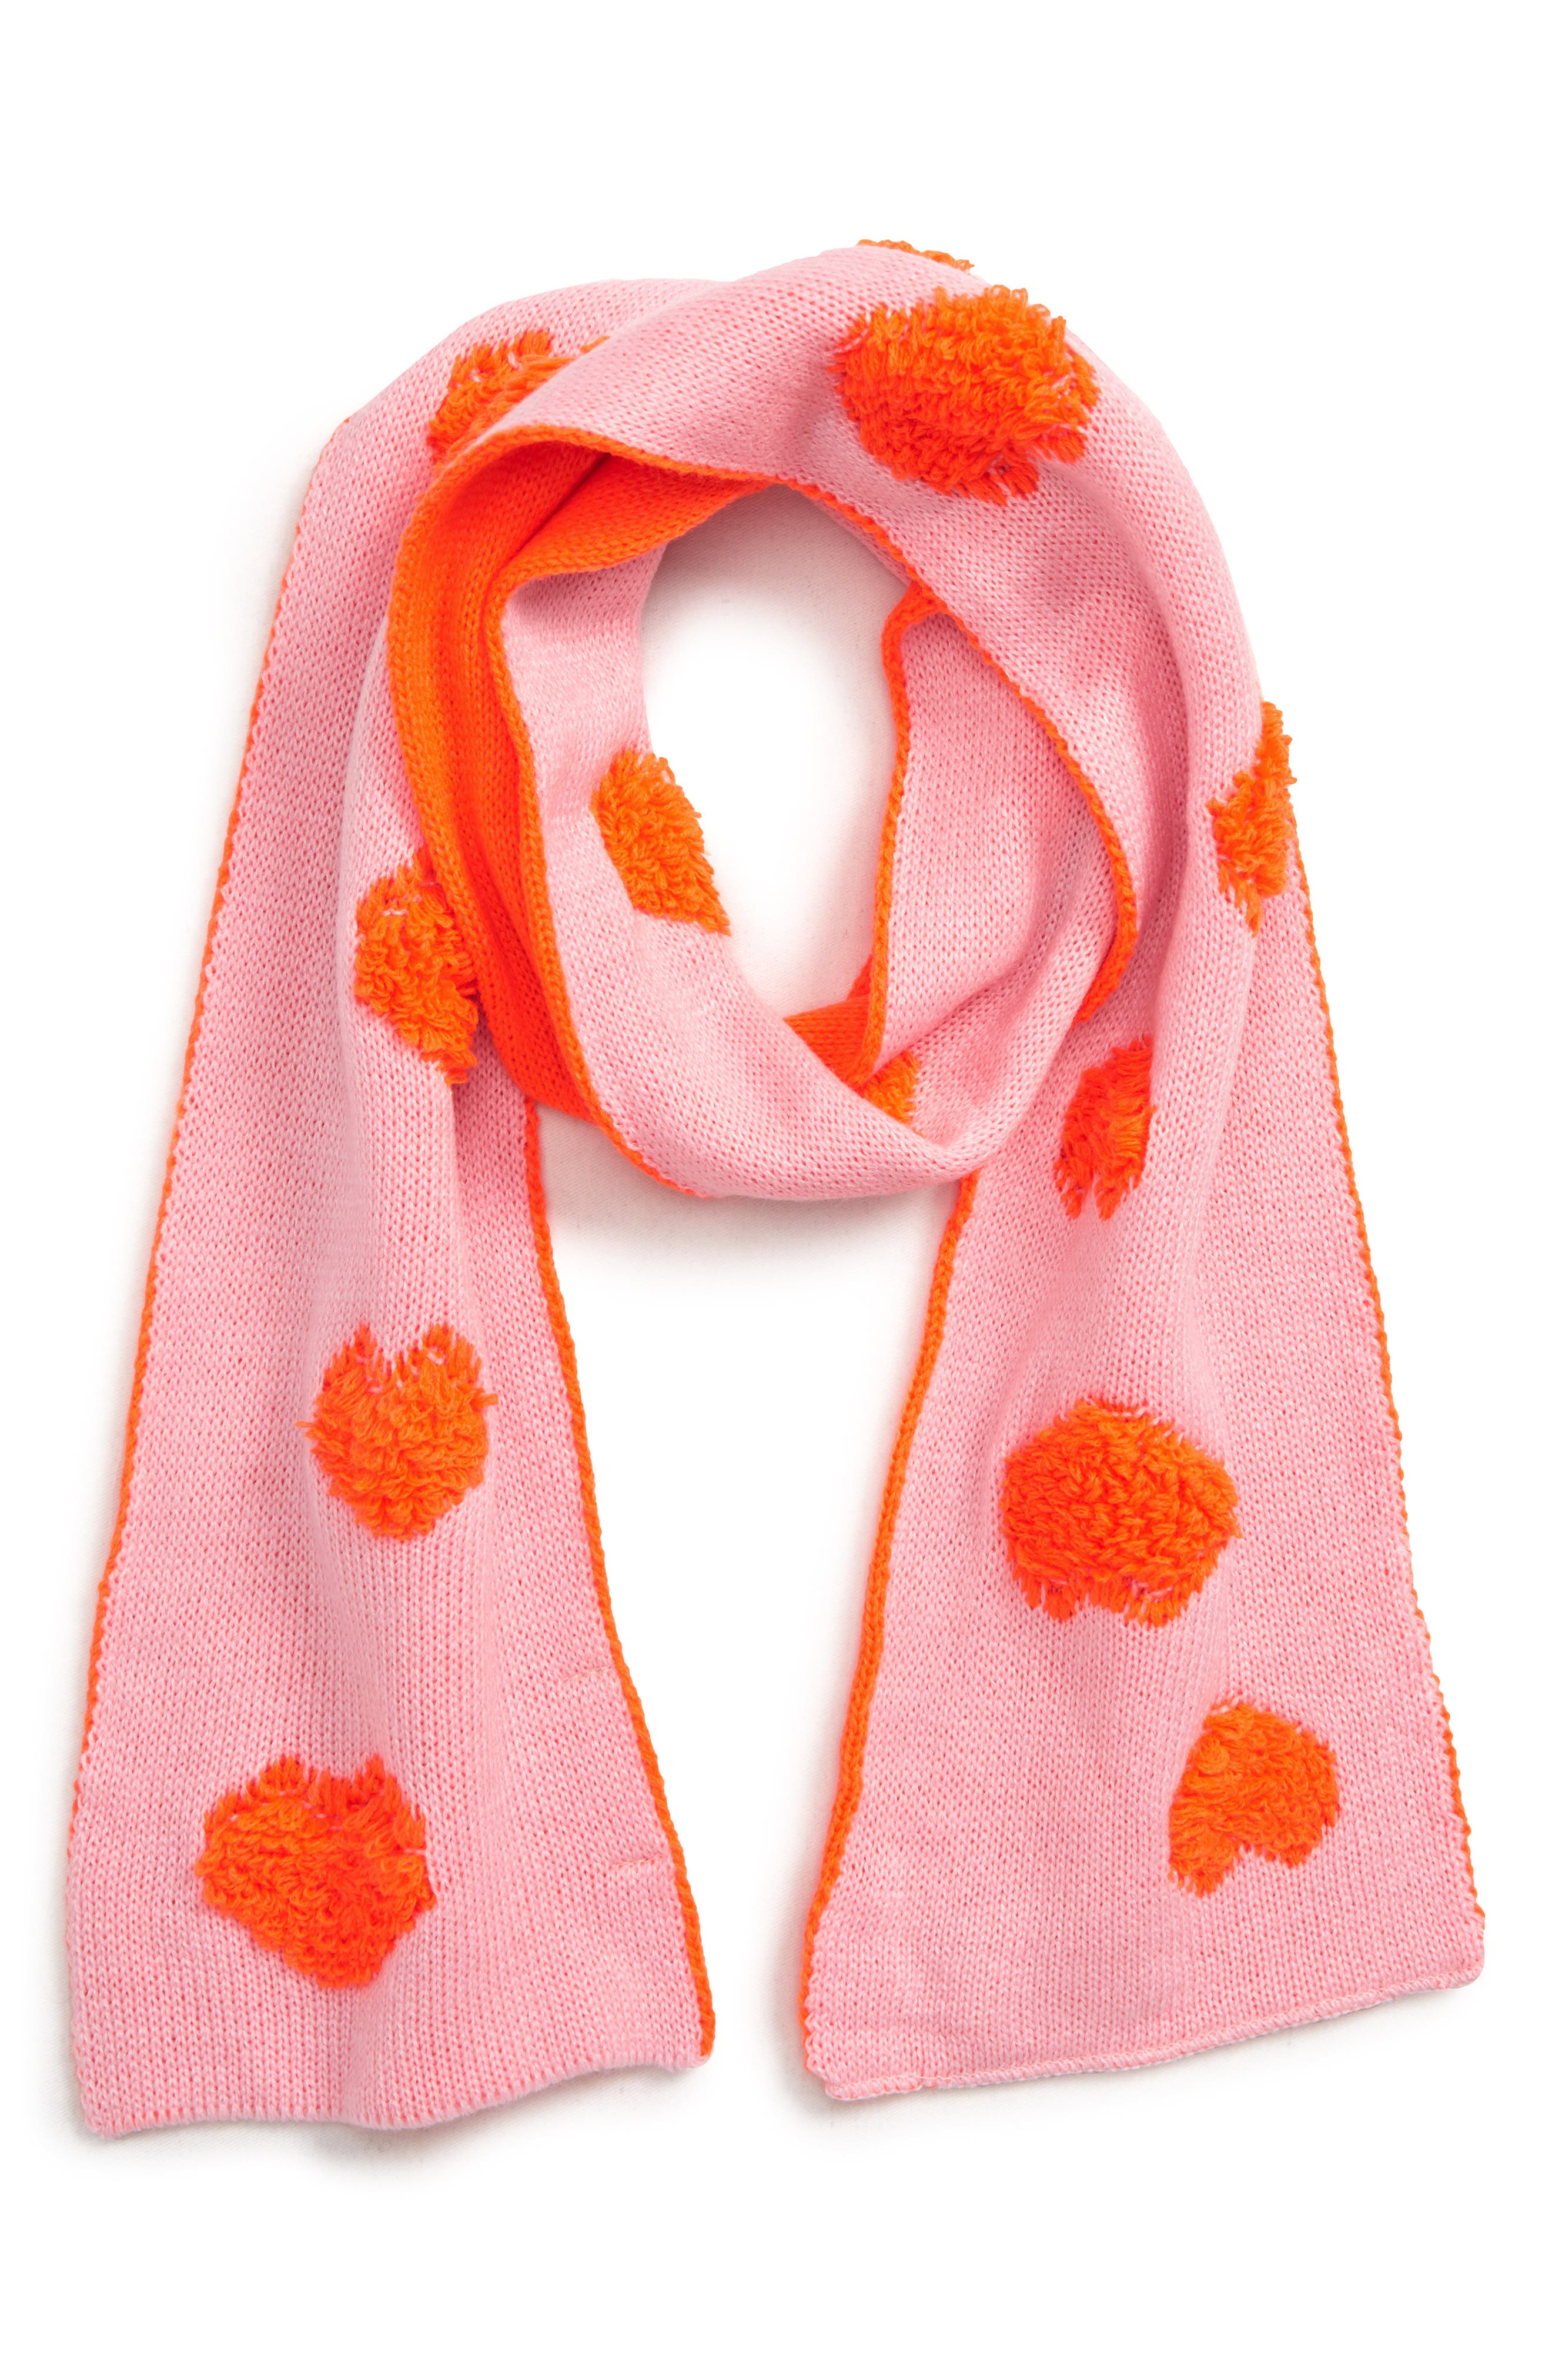 Neon Heart Scarf,                             Main thumbnail 1, color,                             PINK PEACHSKIN- PINK HEARTS